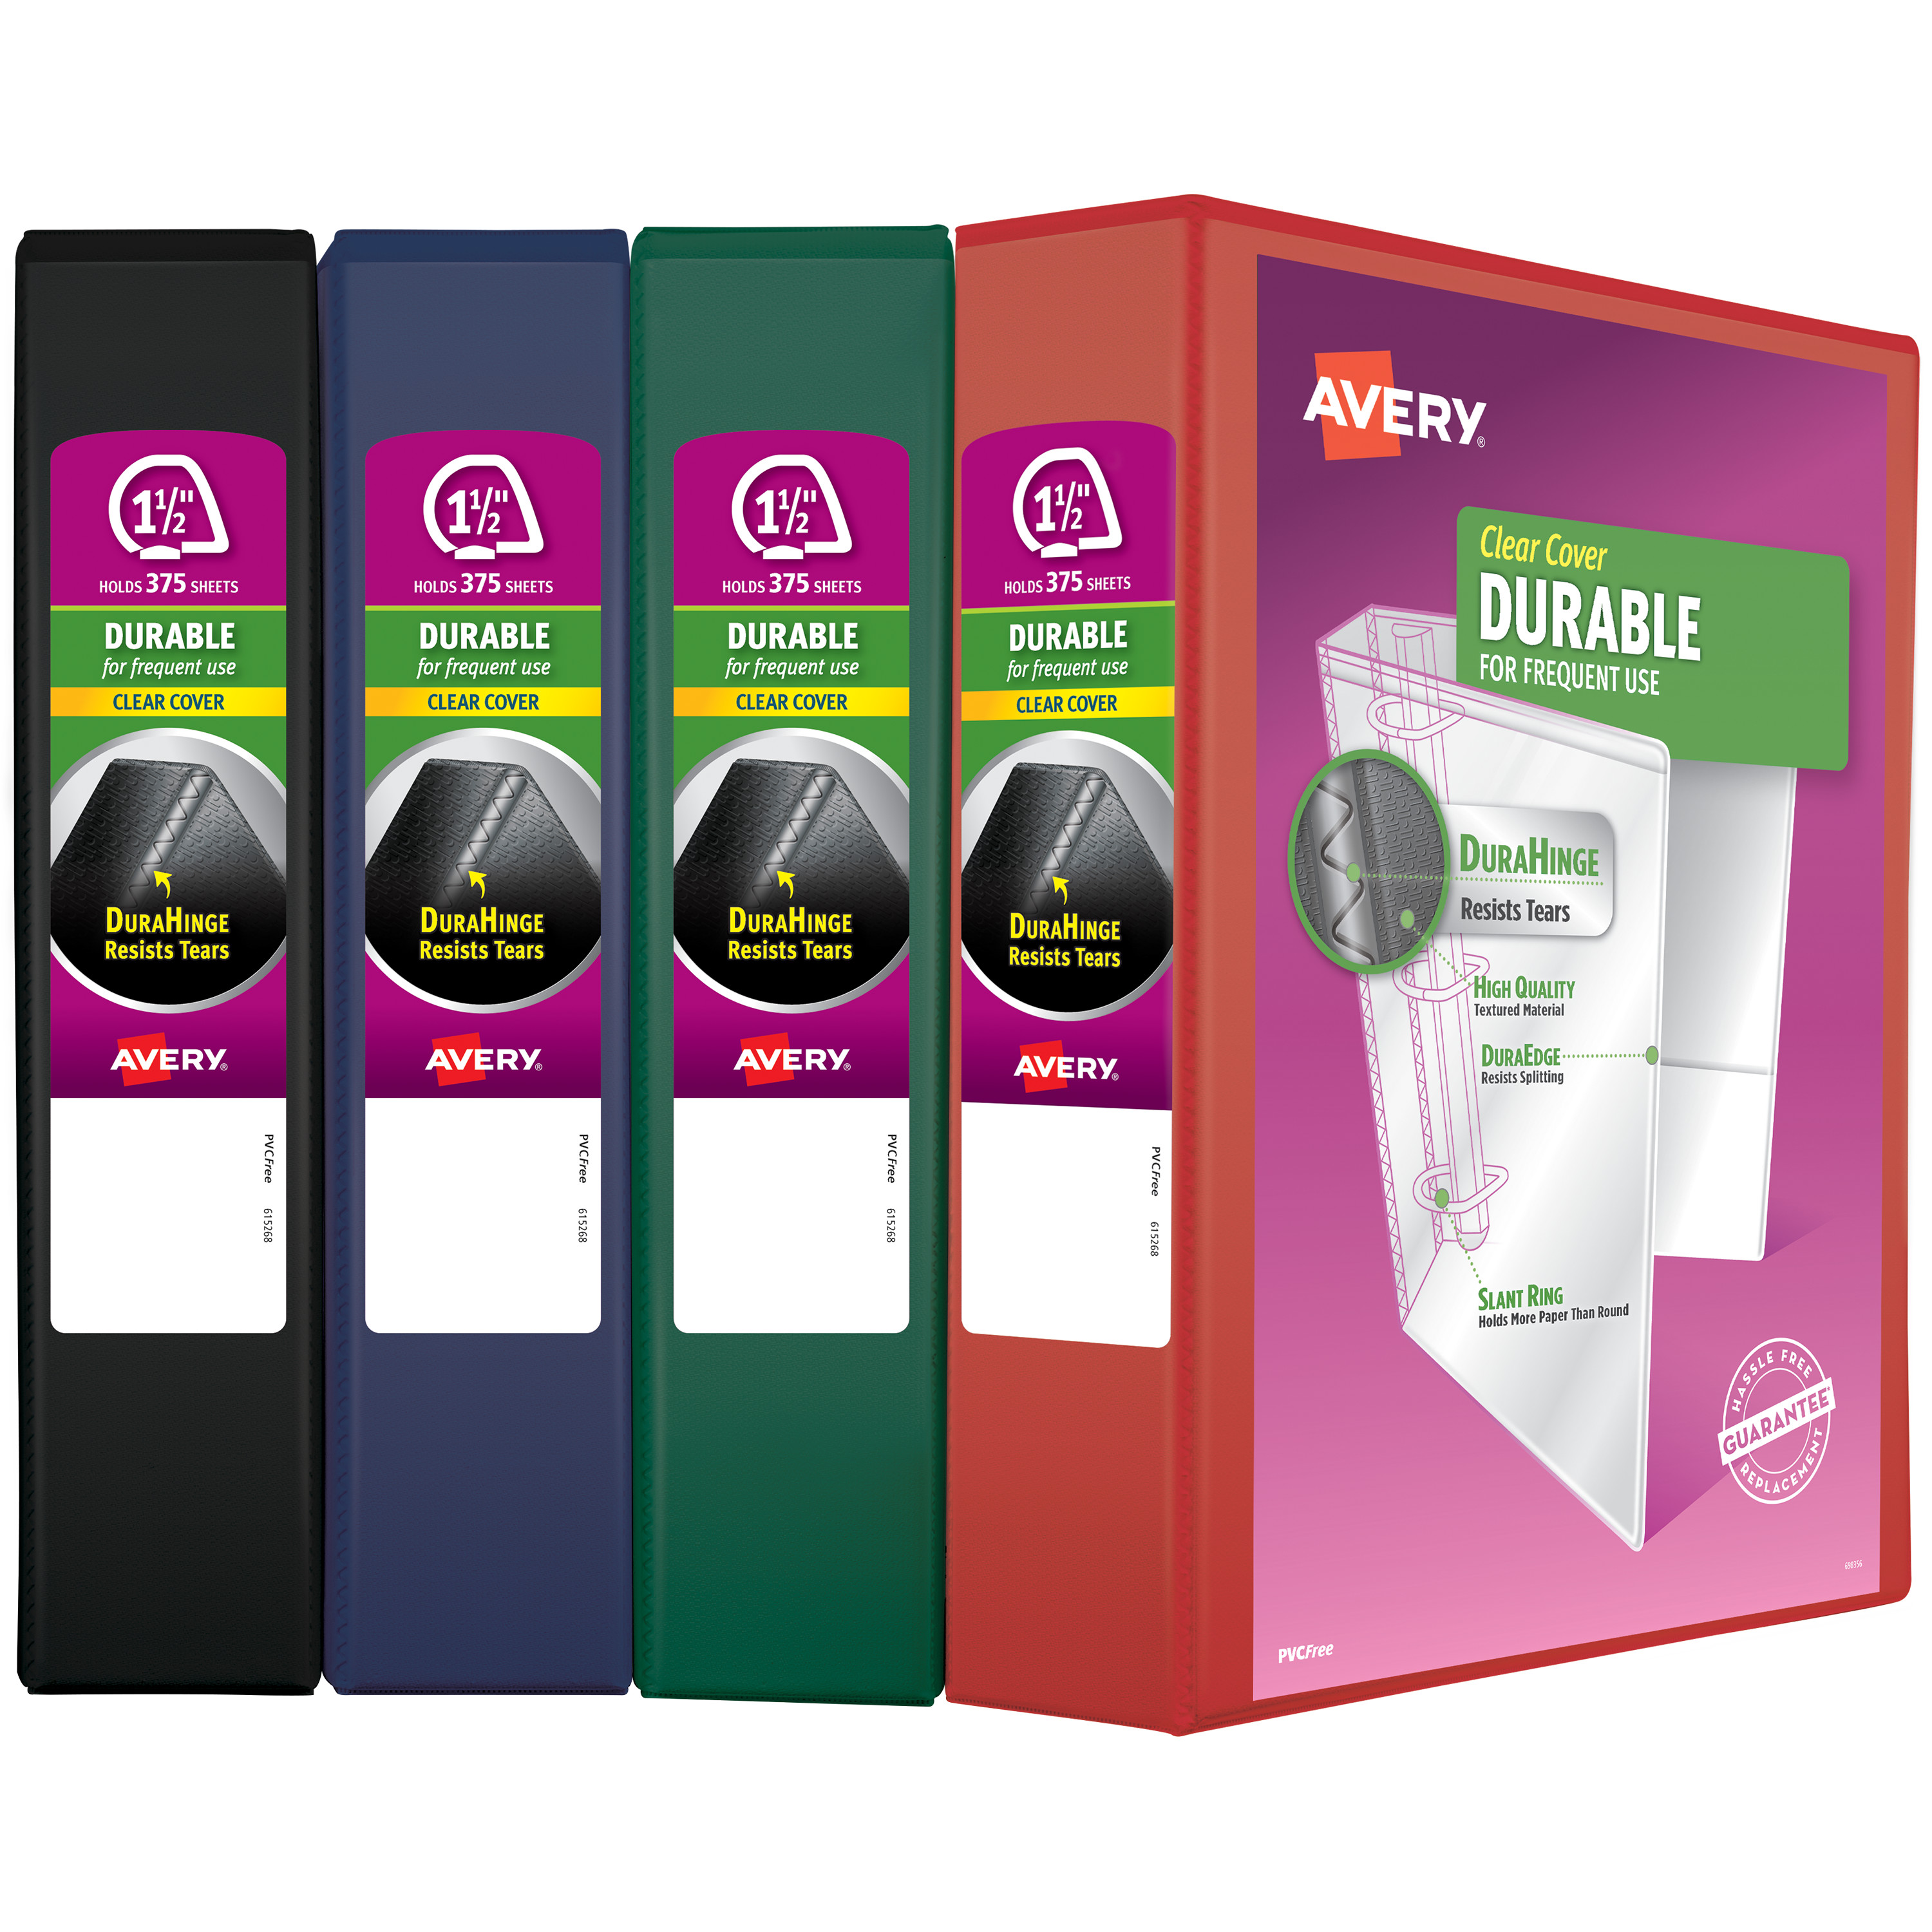 "Avery 1.5"" Durable View Binder, Slant Ring, Assorted"